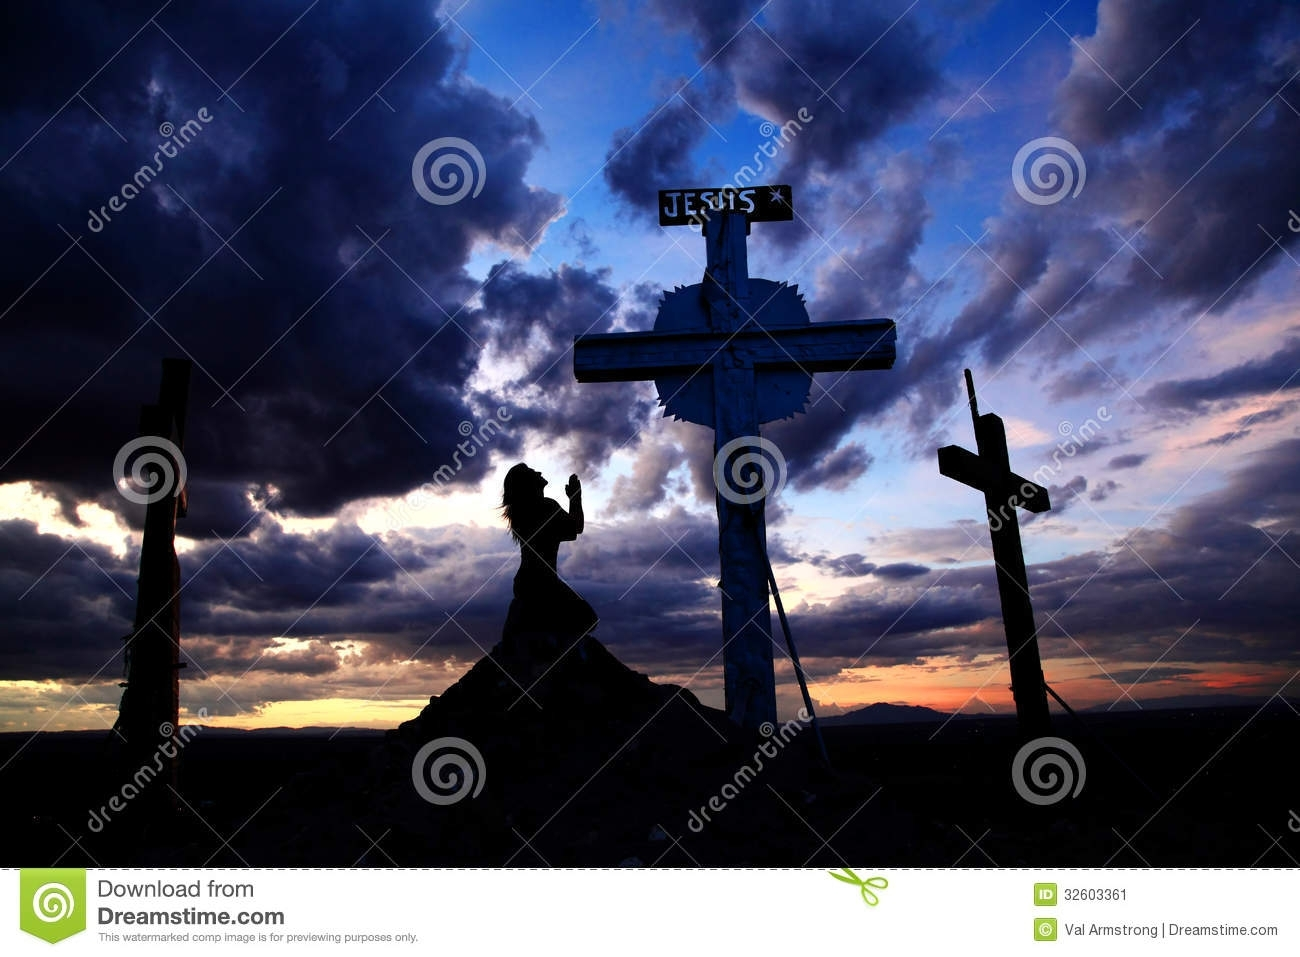 woman praying at cross in sunset stock image - image of hill